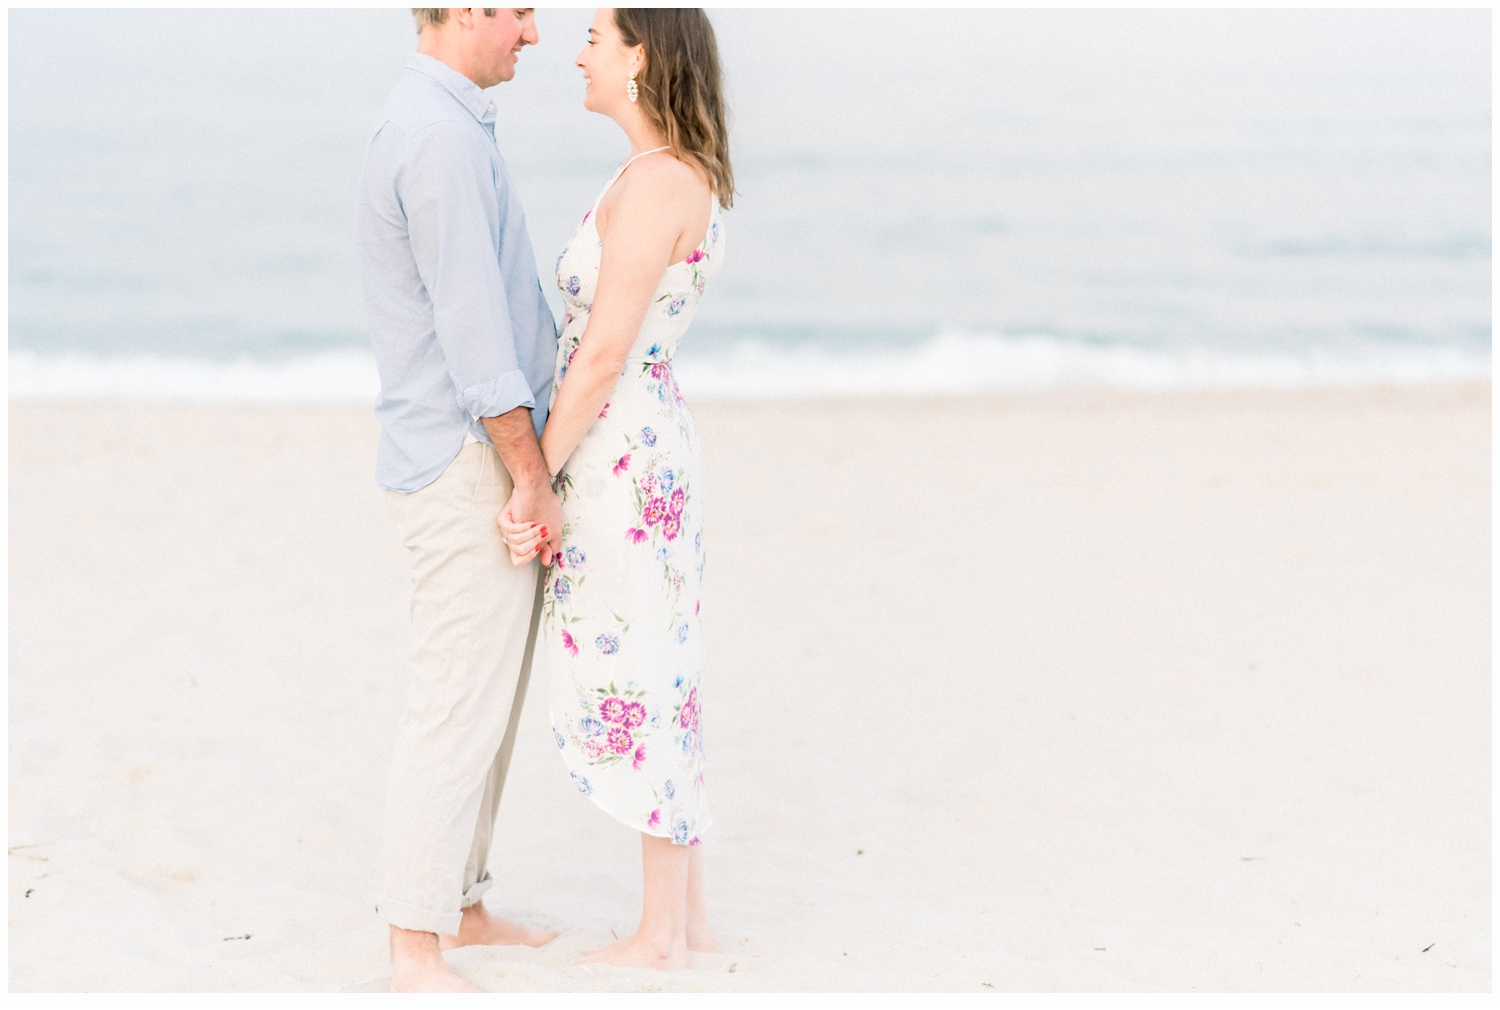 couple on beach holding hands